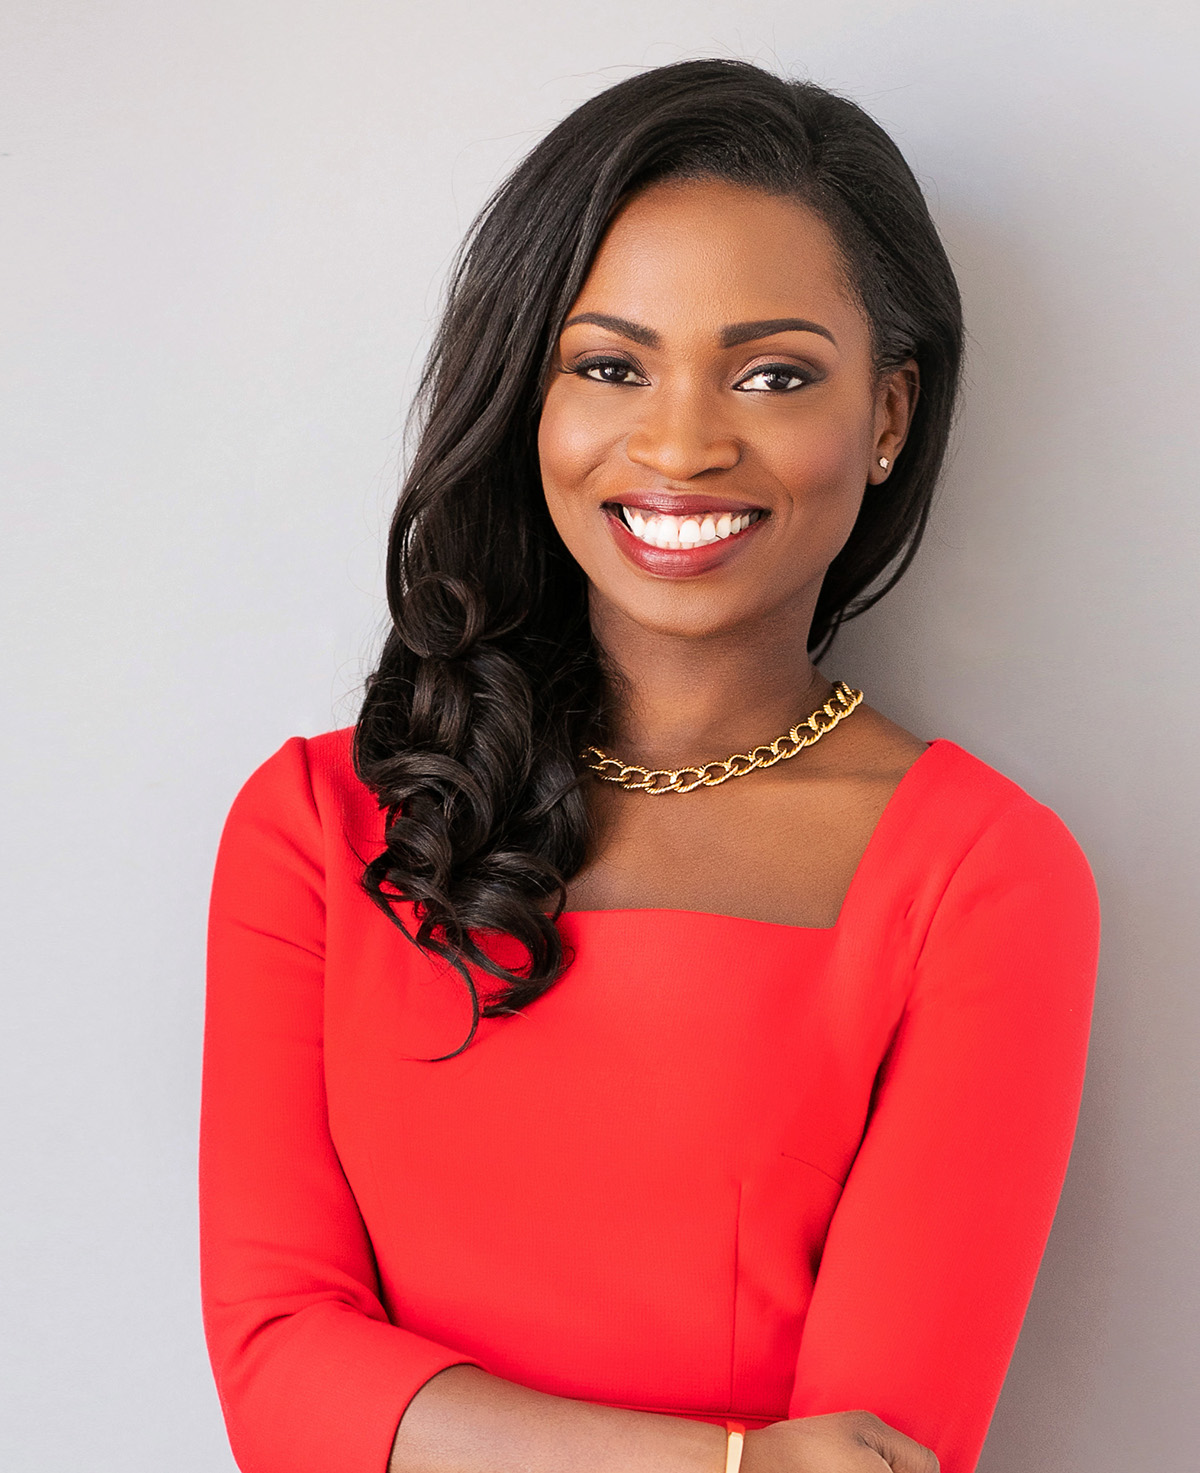 "KAYA LADEJOBI   Kaya is the founder of Earn into Wealth Strategies; a boutique, fee-only financial advisory firm dedicated to working with high-income women executives and entrepreneurs in their 30's, and 40's.  Kaya began her financial services career in 2006 and worked at top wealth management firms catering to high-net worth clients. After nearly a decade of working and observing the financial struggles of her peers, Kaya ultimately concluded; ""high-income professionals who aren't rich yet also deserve access to sound, unbiased, and affordable financial advice."" In late 2015, Kaya founded Earn Into Wealth Strategies to do just that. Kaya financial advice has been quoted in several top publications such as Yahoo Finance, Business Insider, and HuffPost! She was recently named as one of the Top 10 Young Advisors to Watch in 2019 by Financial Advisor Magazine.  Kaya has an MBA from Cornell and a B.S in Finance from University of Maryland.  Kaya is on a mission to help clients accomplish their financial & life goals. Through comprehensive financial planning; clients can reduce debt, minimize risk & taxes, while investing for the future.  In her spare time, Kaya enjoys traveling with her husband and son, reading all things non-fiction, and discovering new restaurants in the NYC area.  Website: https://earnintowealth.com/  Instagram: https://www.instagram.com/kayaladejobi/"